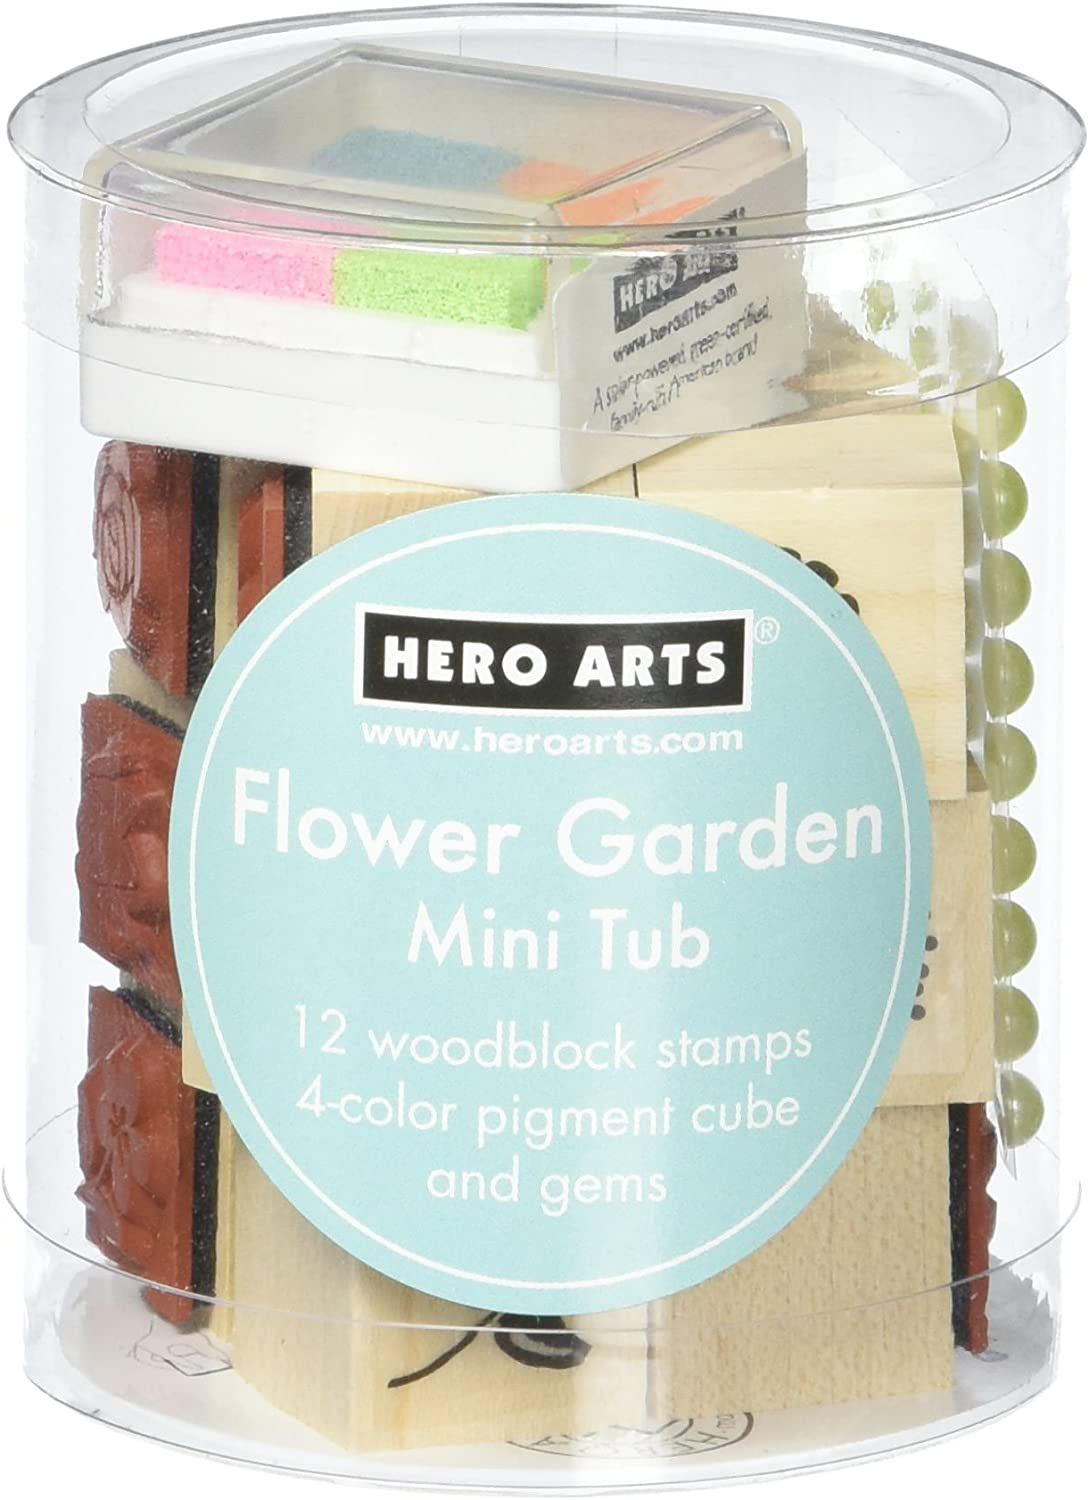 Hero Arts Flower Garden Mini Tub